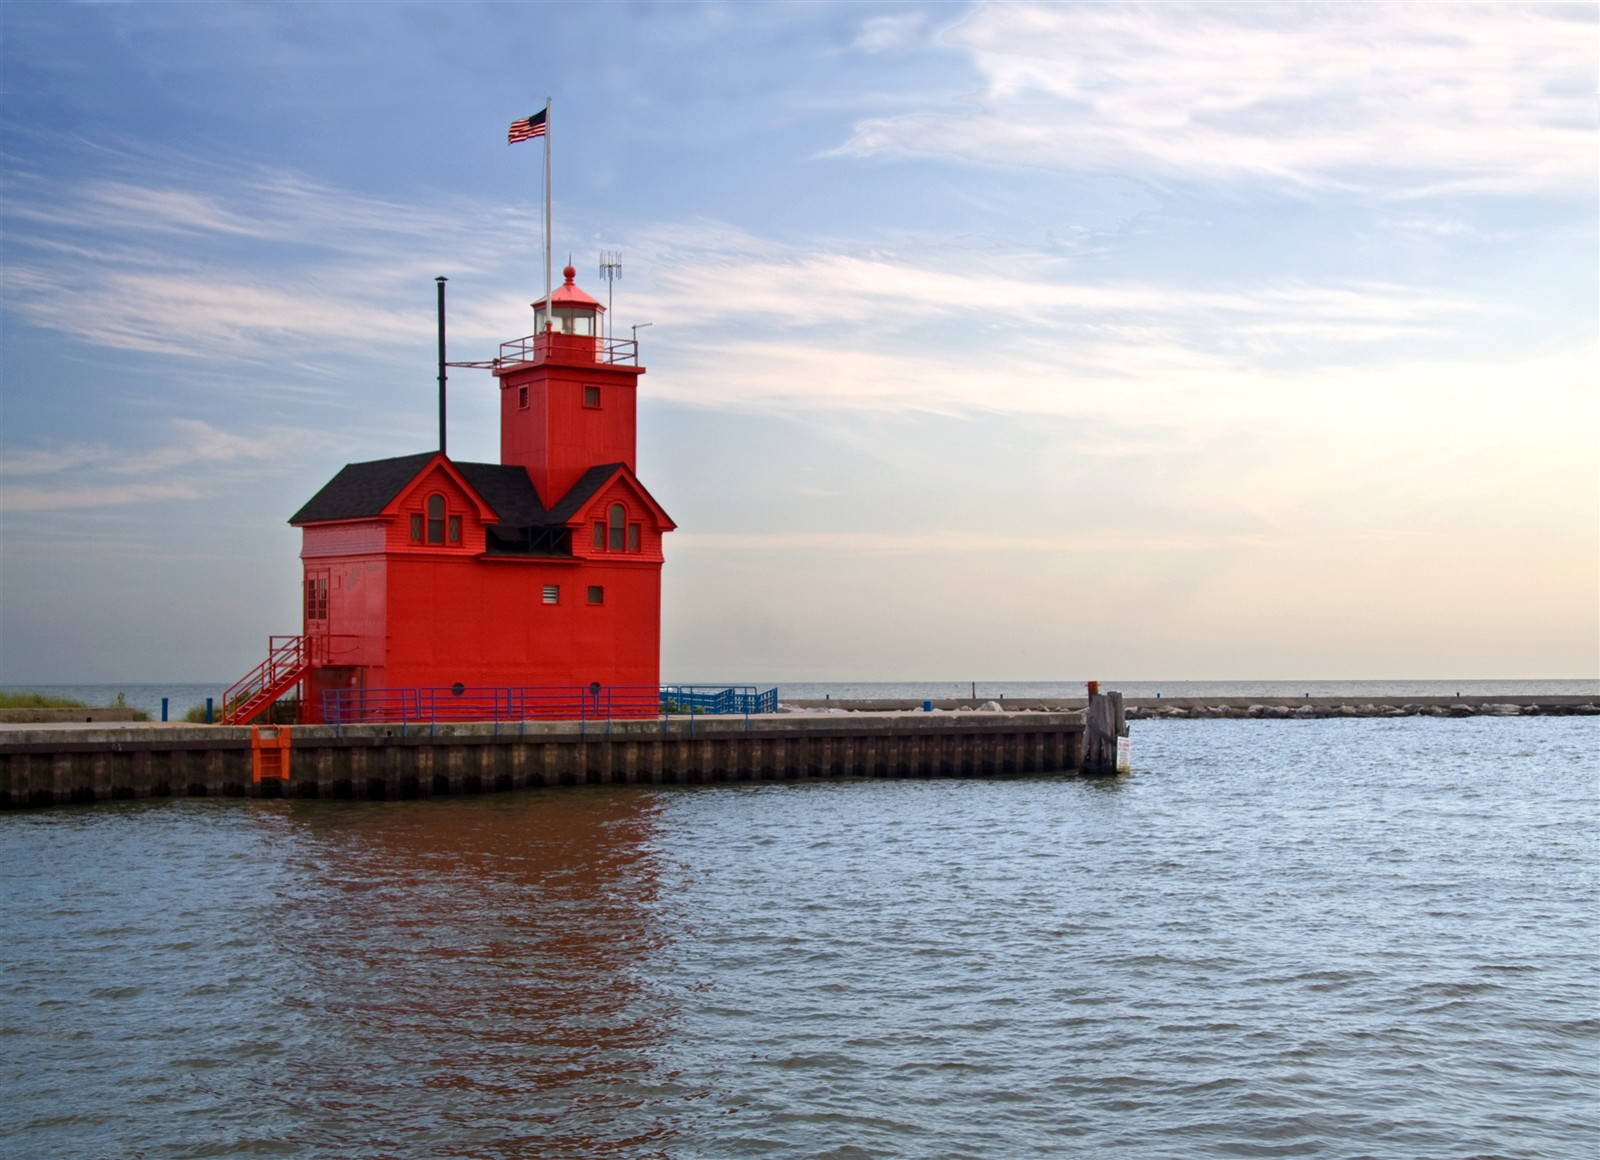 Big red lighthouse holland mi bikerguy galleries for Tiny house holland michigan